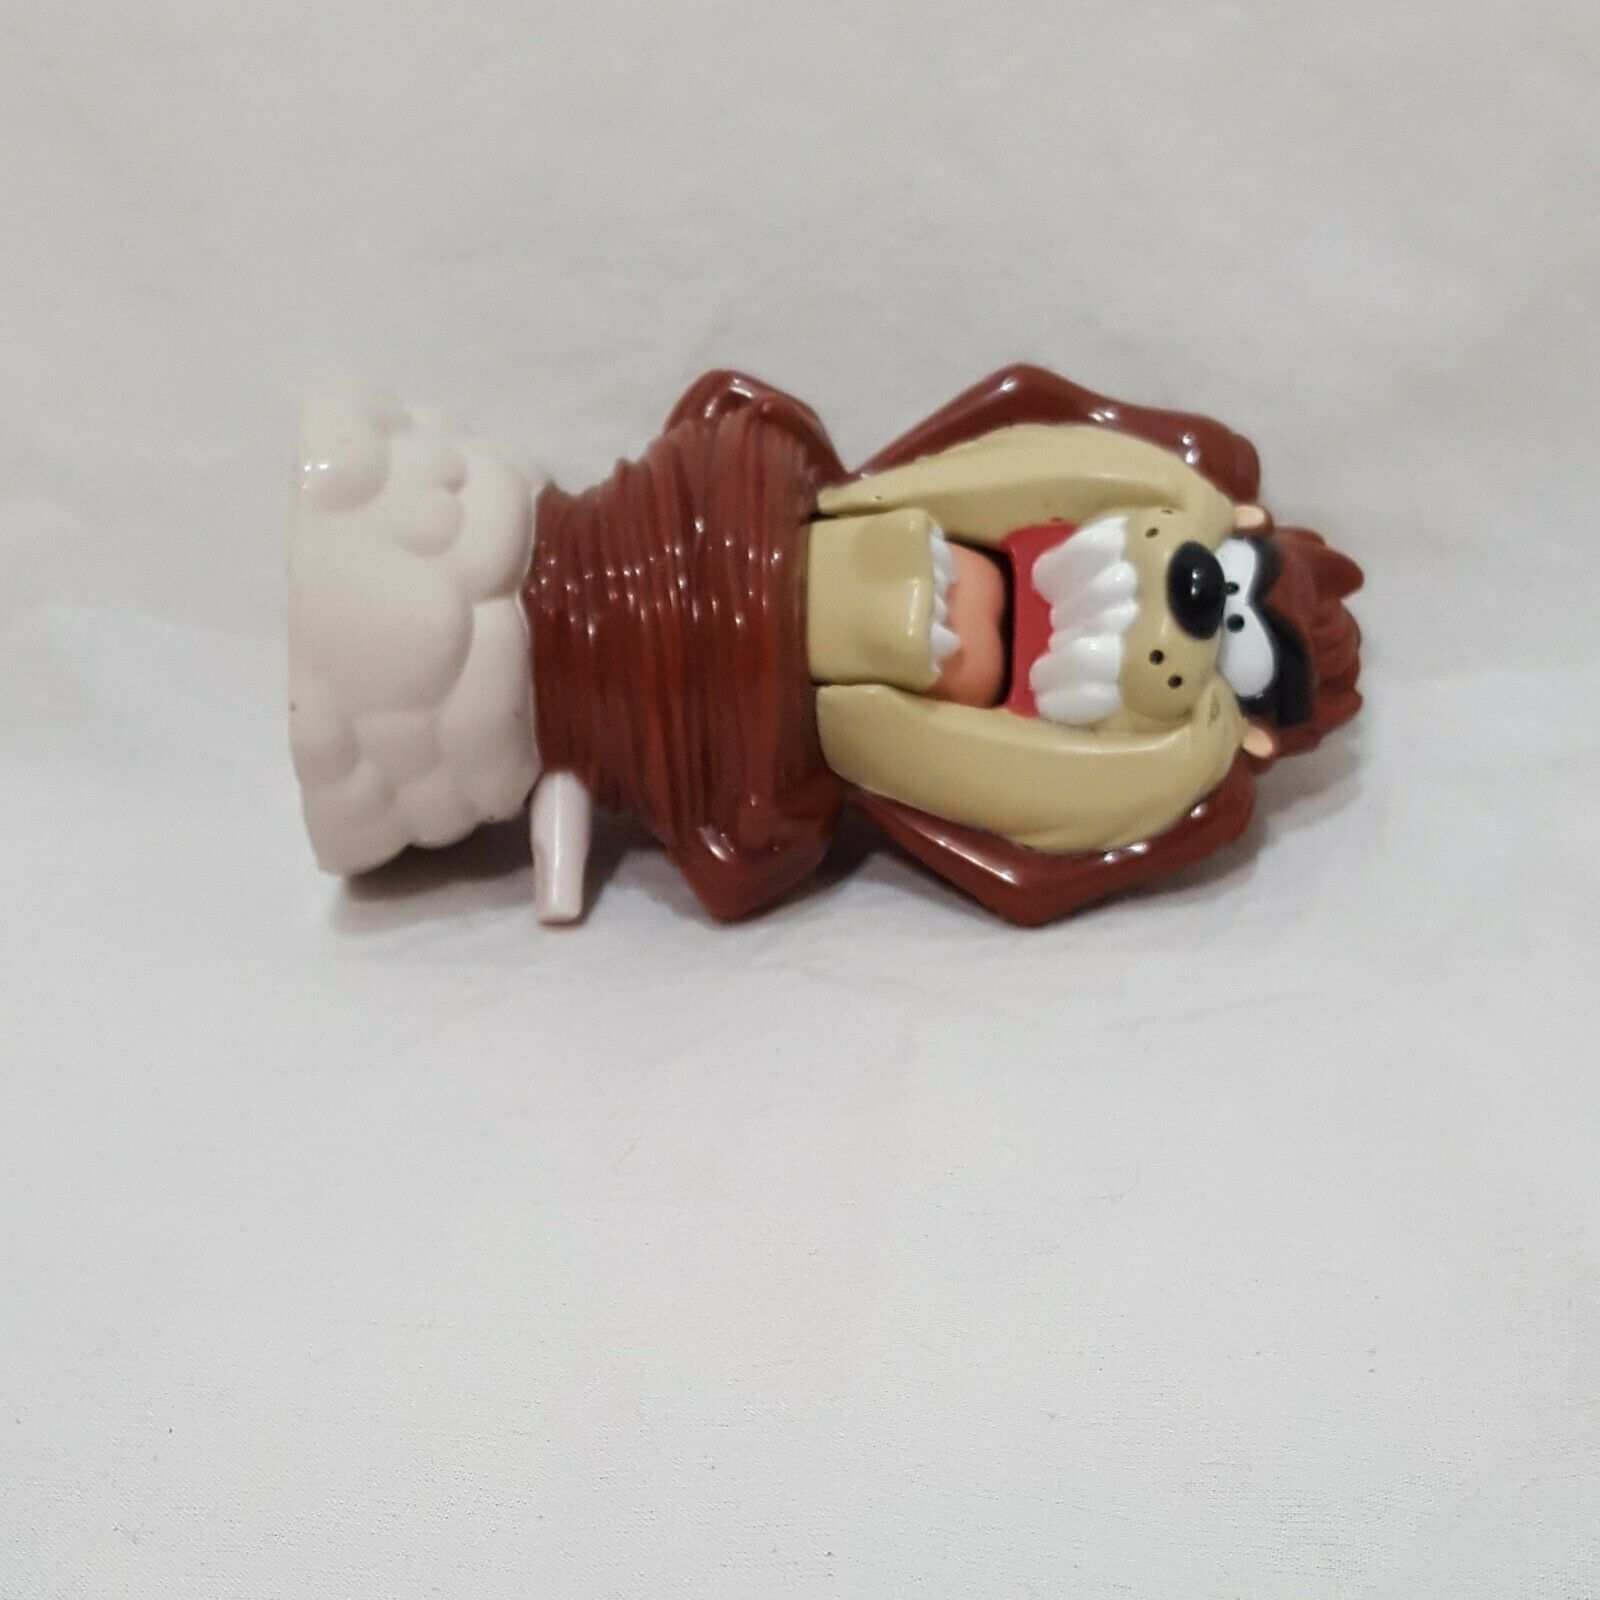 Taz Wind-up Toy 3 inches 2001 Warner Brothers Tazmanian Devil Plastic Works